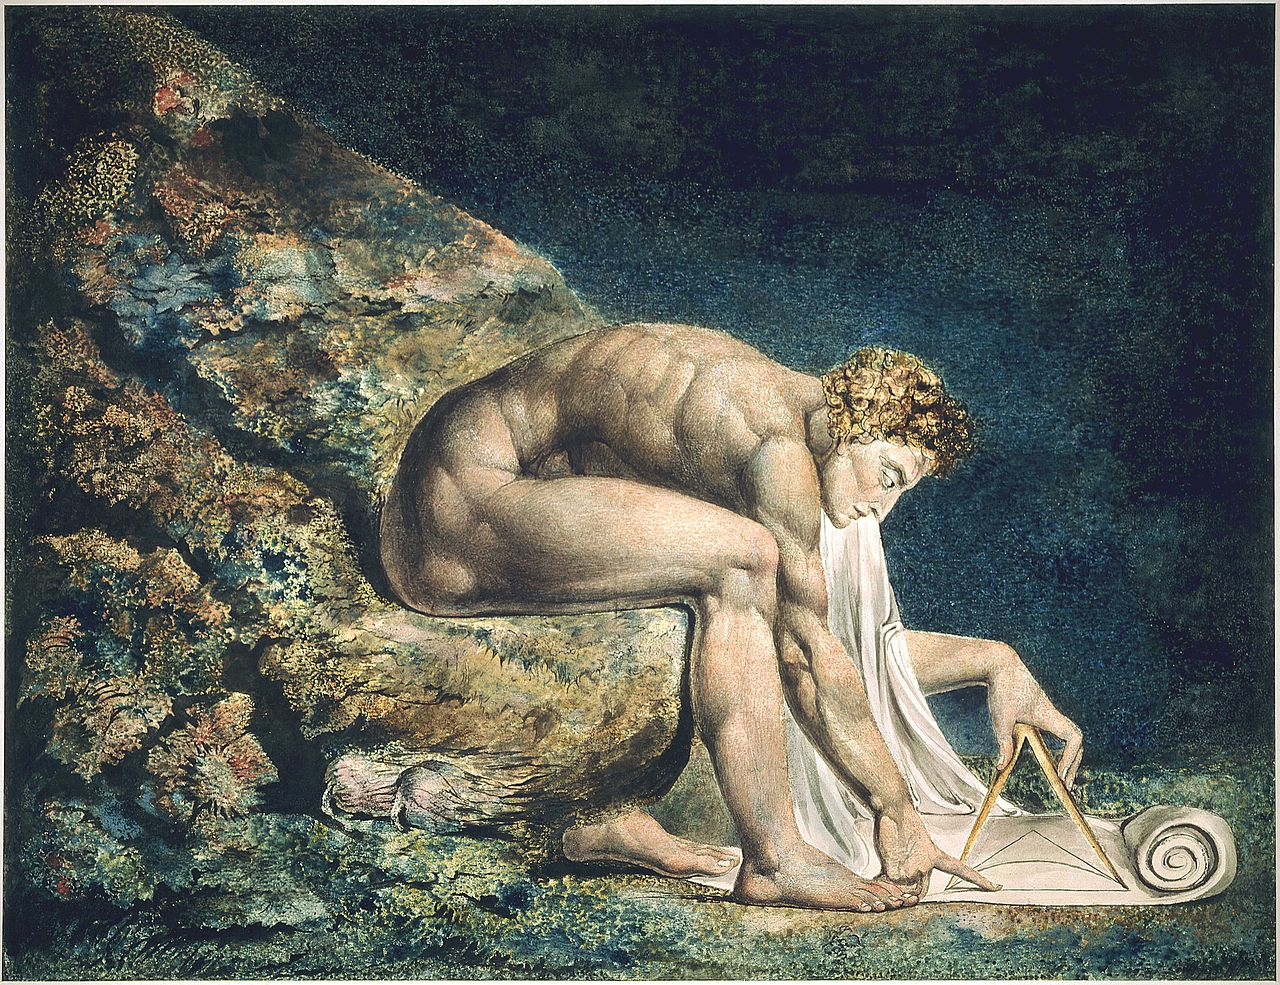 https://upload.wikimedia.org/wikipedia/commons/thumb/0/0e/Newton-WilliamBlake.jpg/1280px-Newton-WilliamBlake.jpg